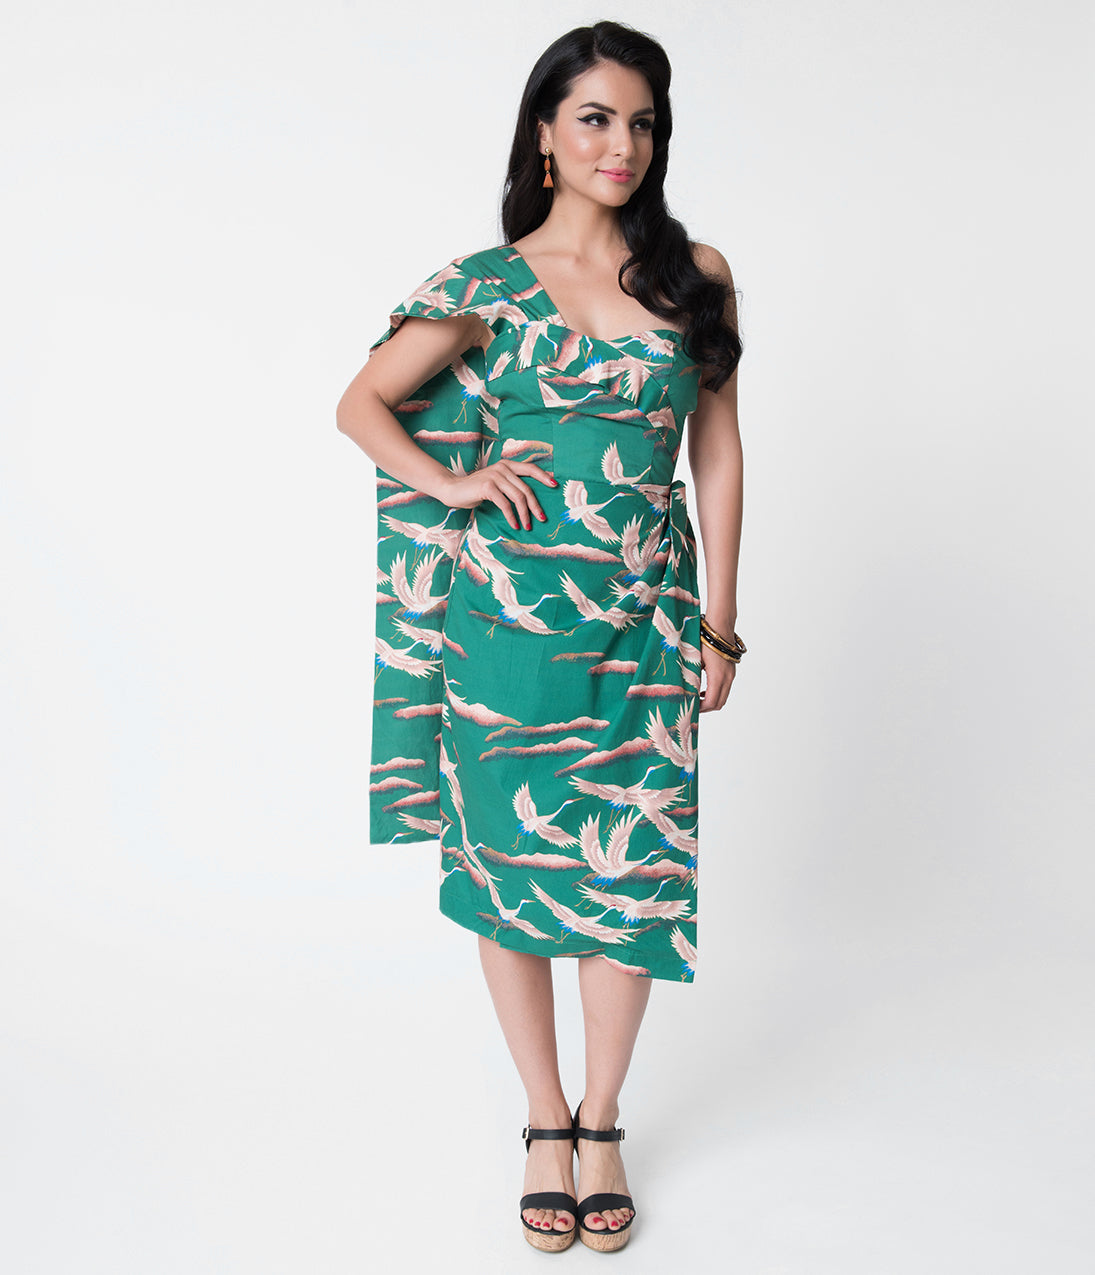 New Fifties Dresses | 50s Inspired Dresses Alfred Shaheen Green Cranes Print Sarong $119.00 AT vintagedancer.com